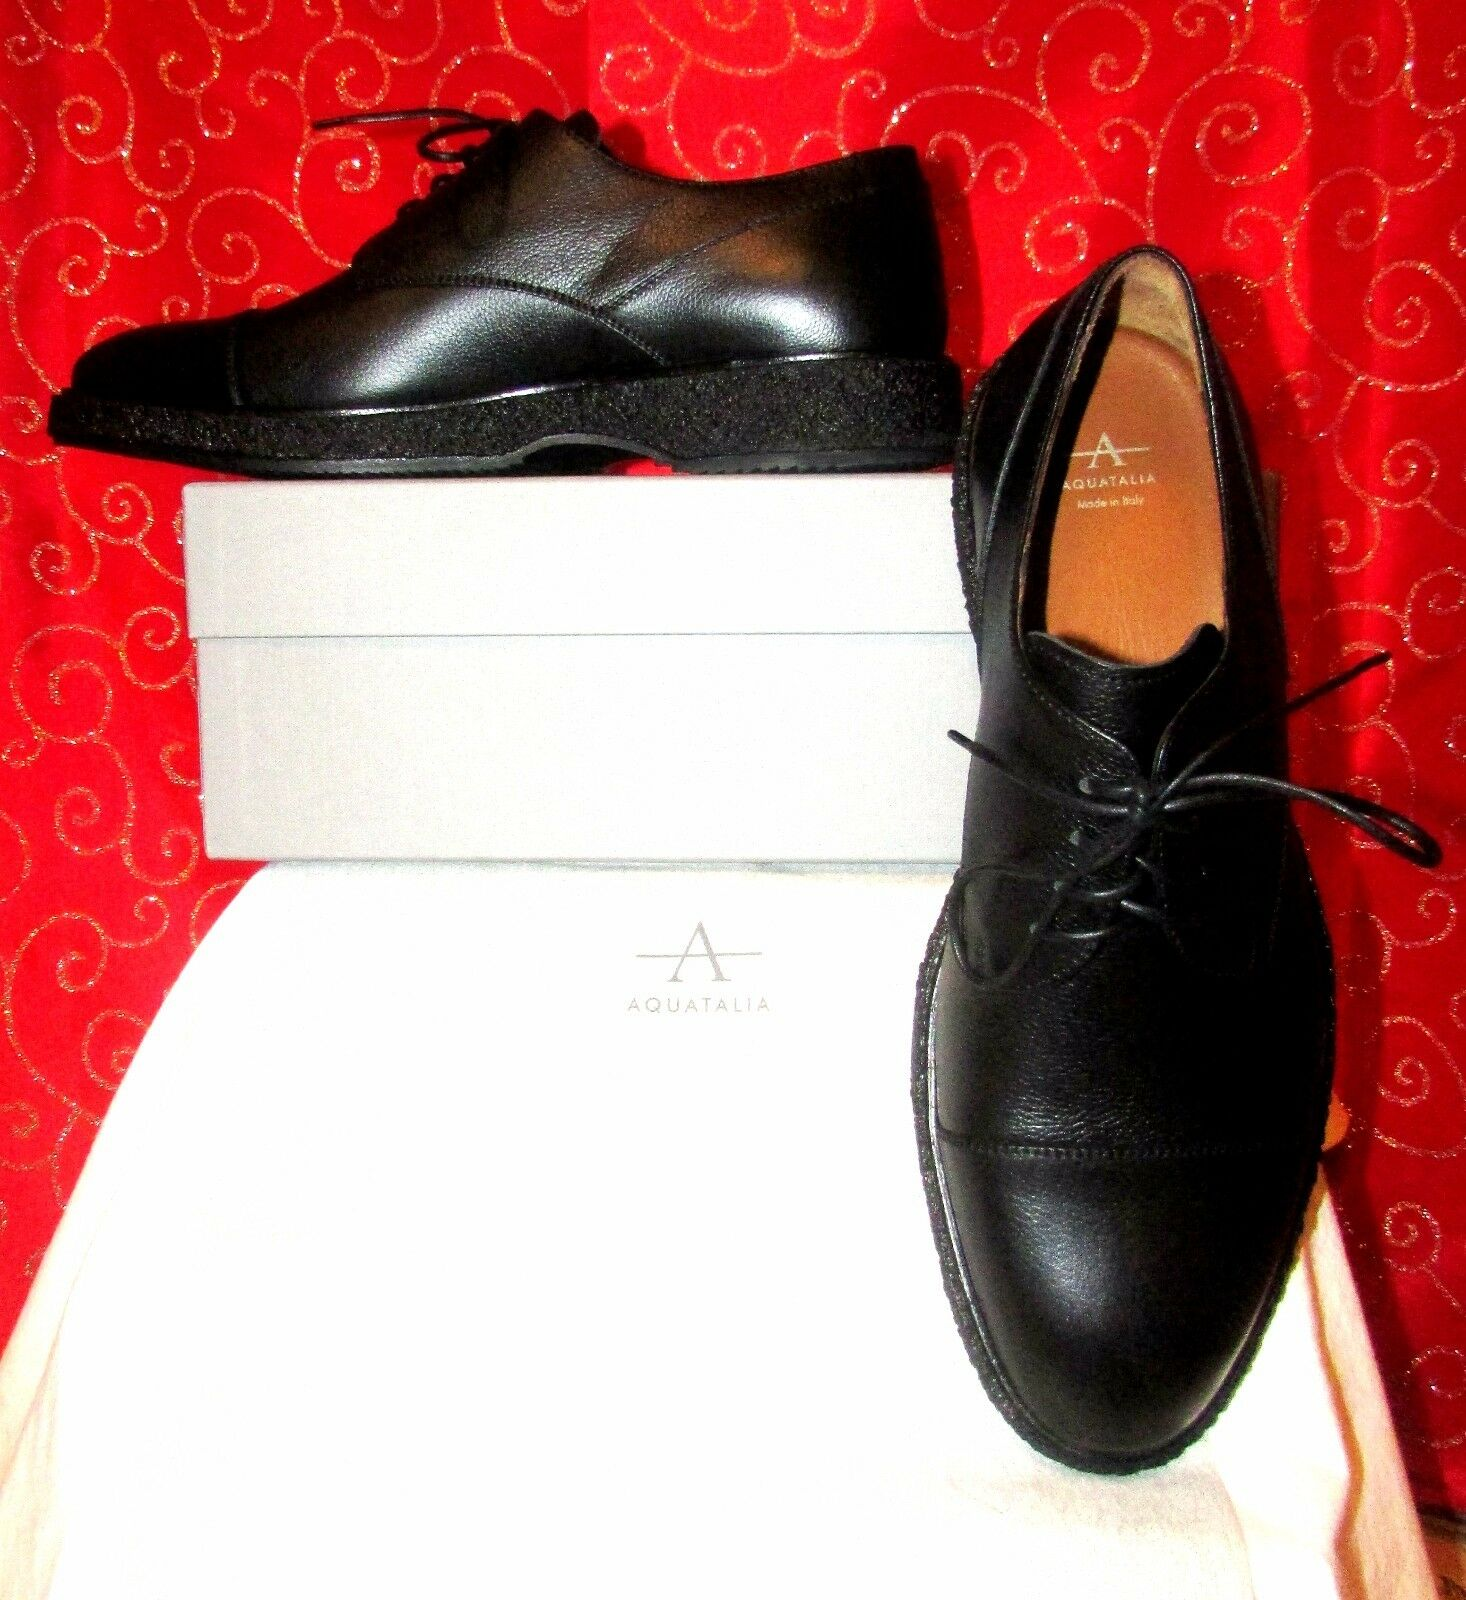 NEW AQUATALIA PIERCE BLK ITALIAN HAND CRAFTED WEATHERPROOF LEATHER OXFORDS SZ 12